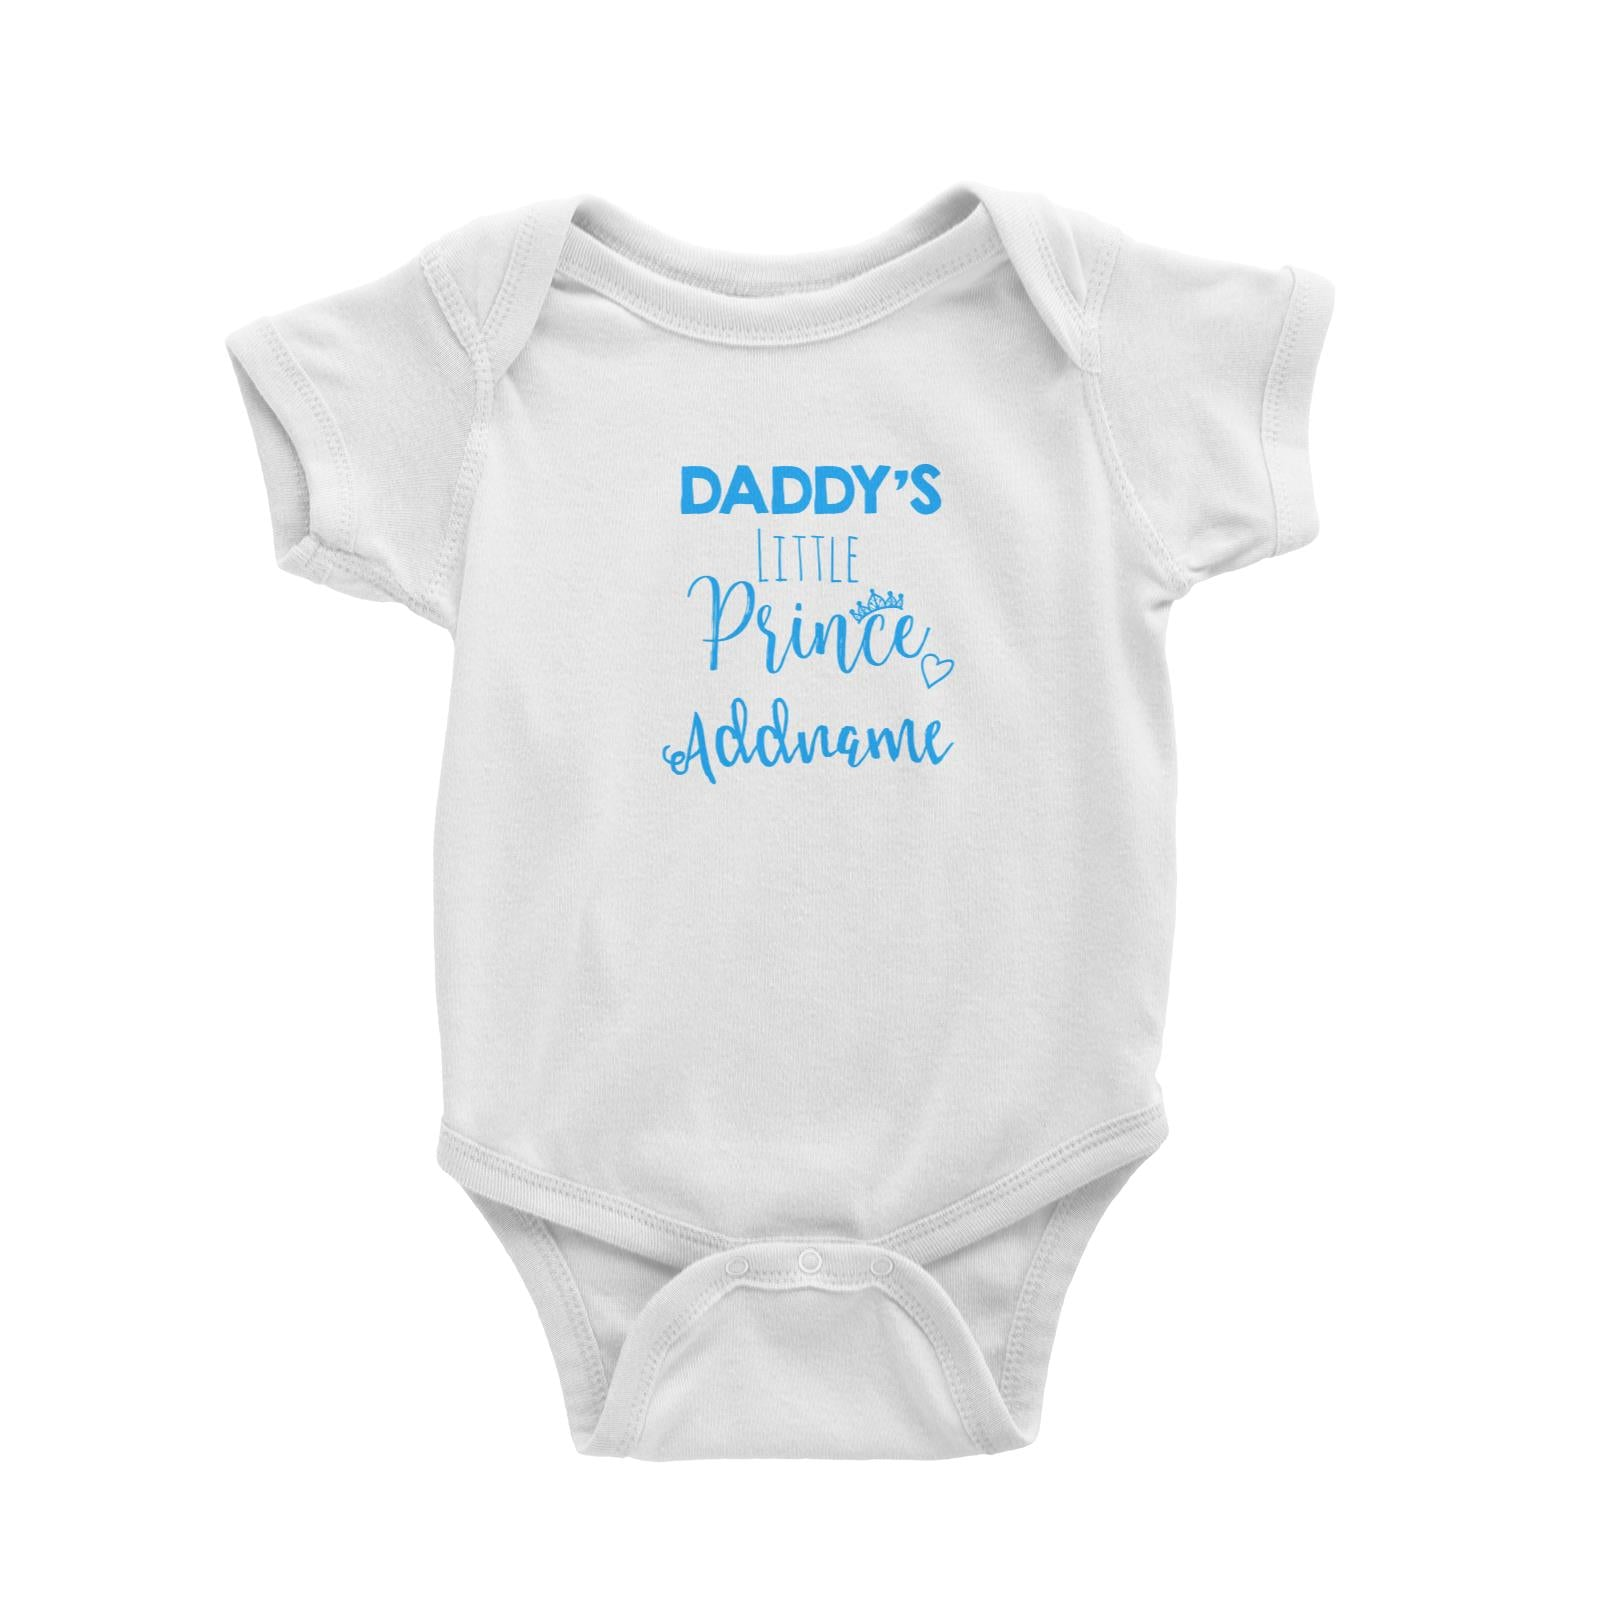 Babywears.my Daddy's Little Prince Addname T-Shirt Personalizable Designs For Boys